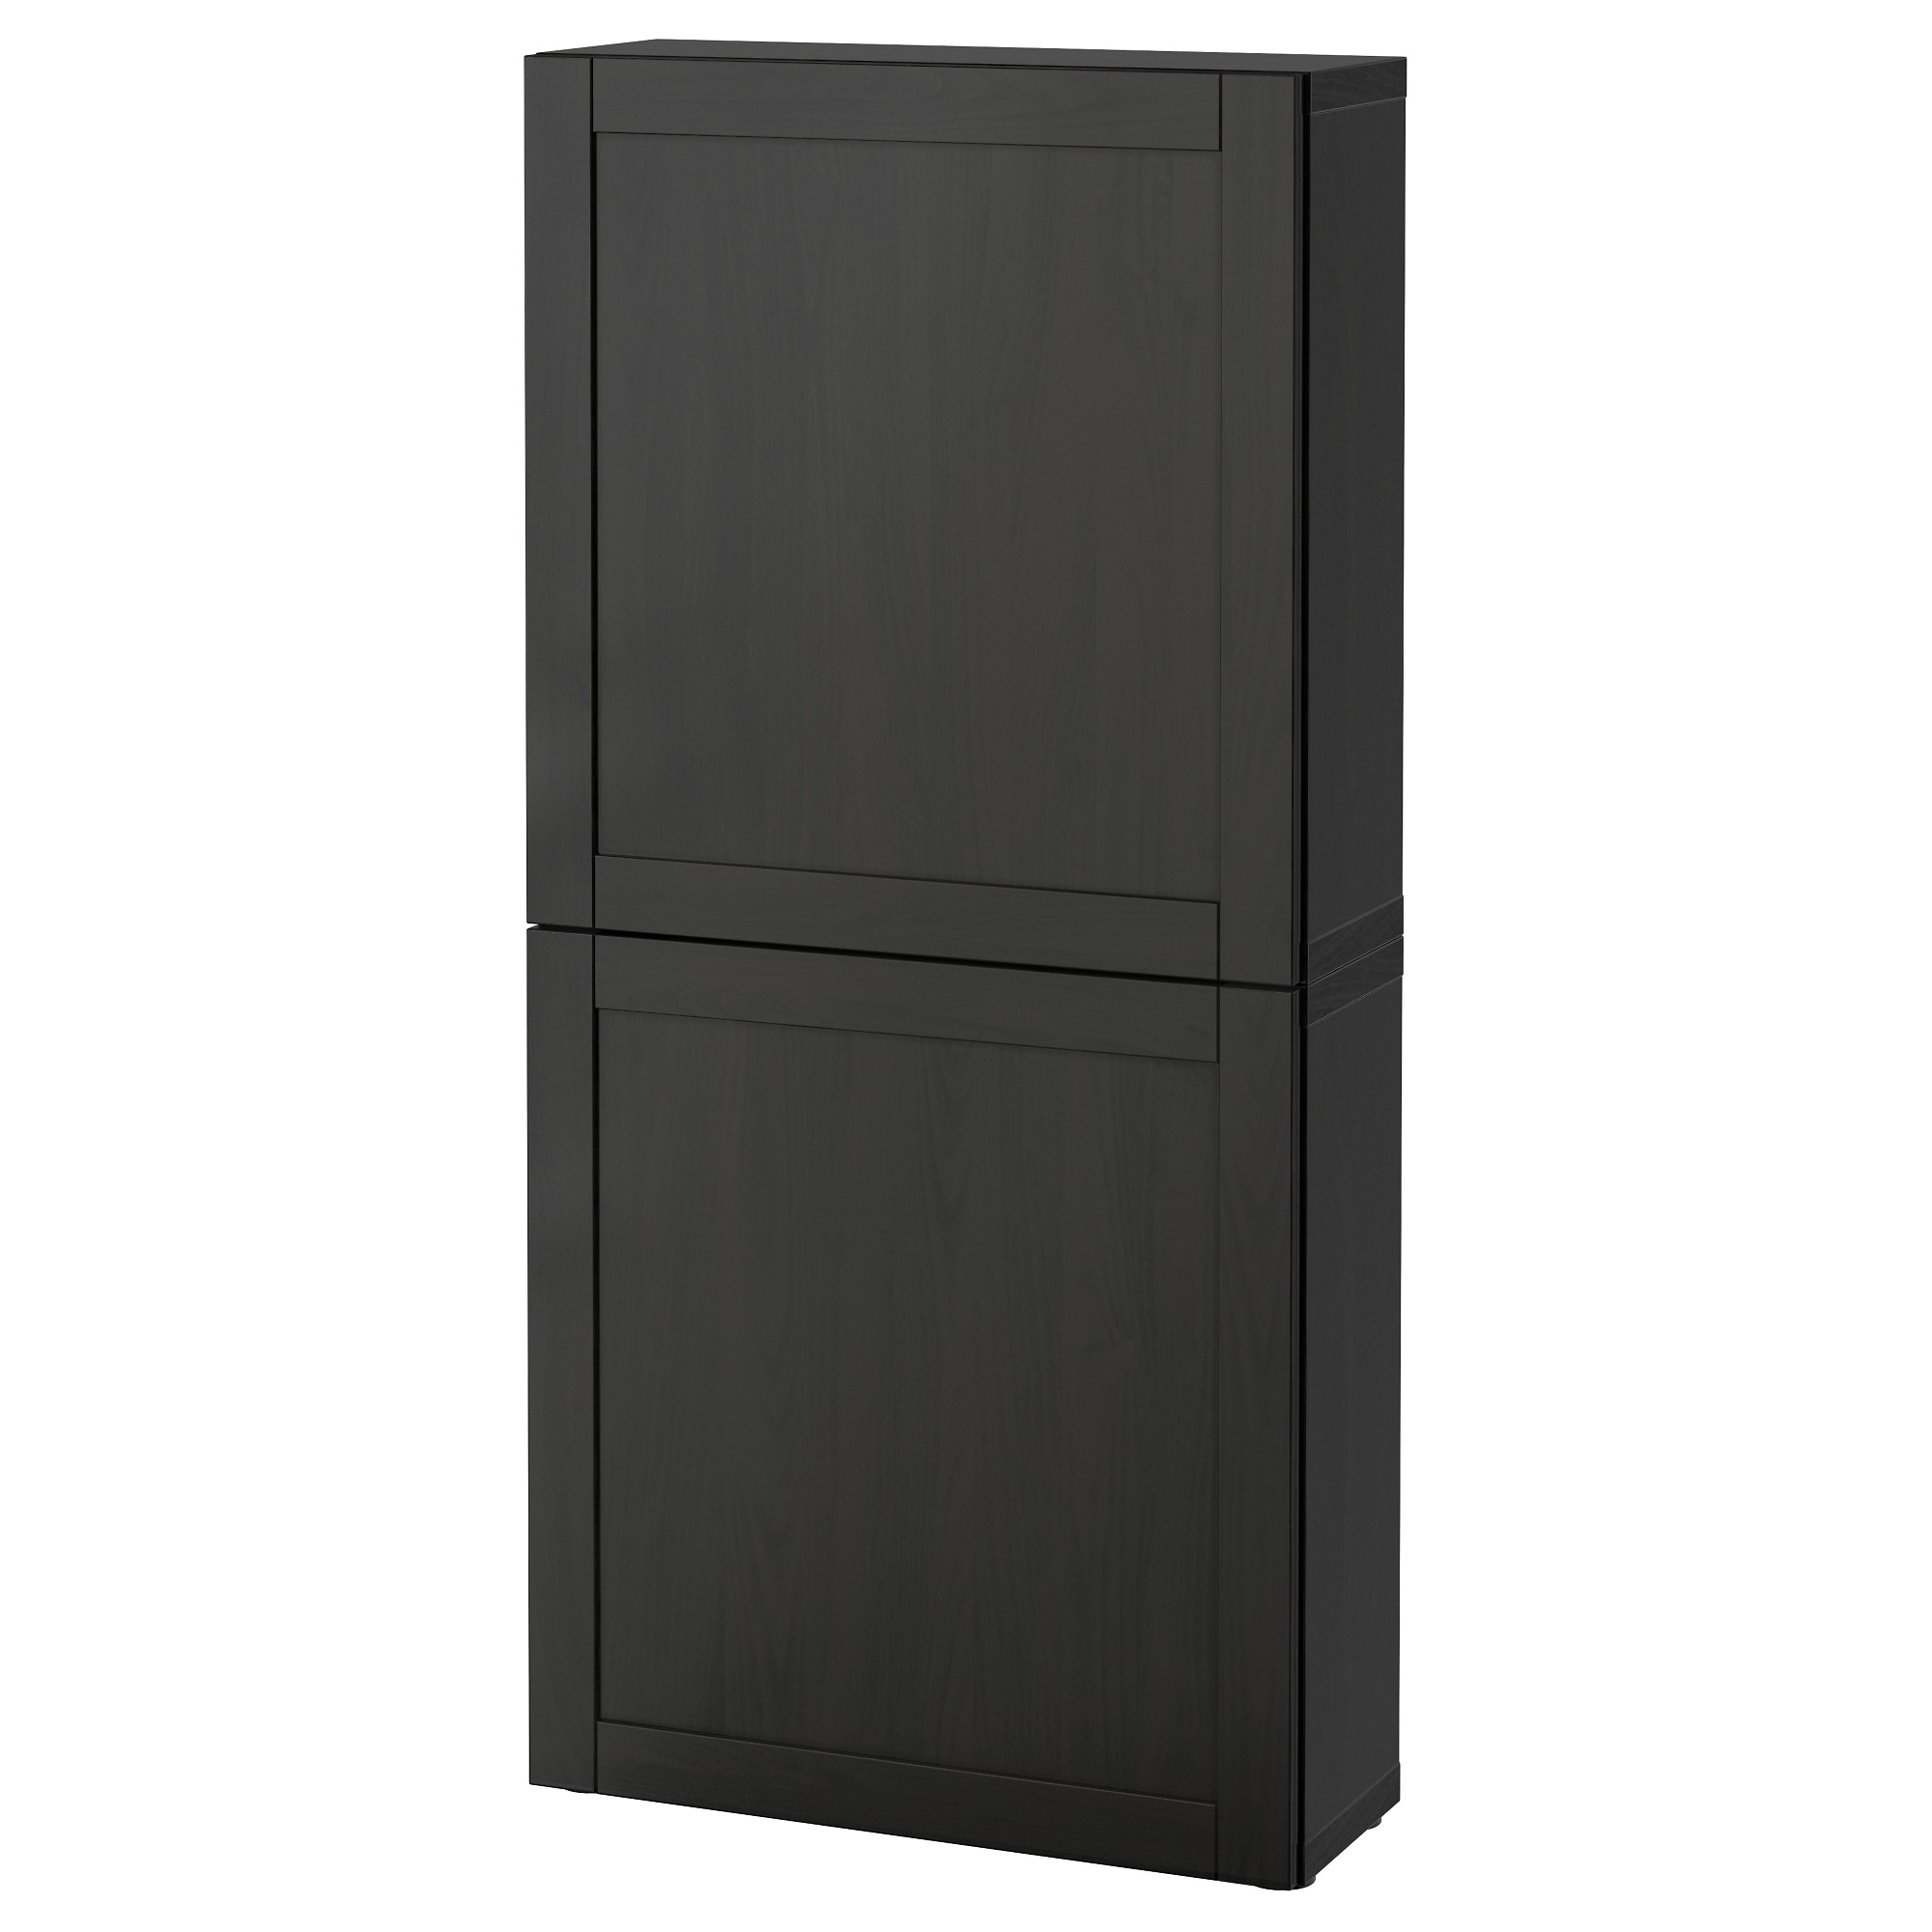 wonderful meuble profondeur 20 cm 6 meuble rangement 30. Black Bedroom Furniture Sets. Home Design Ideas